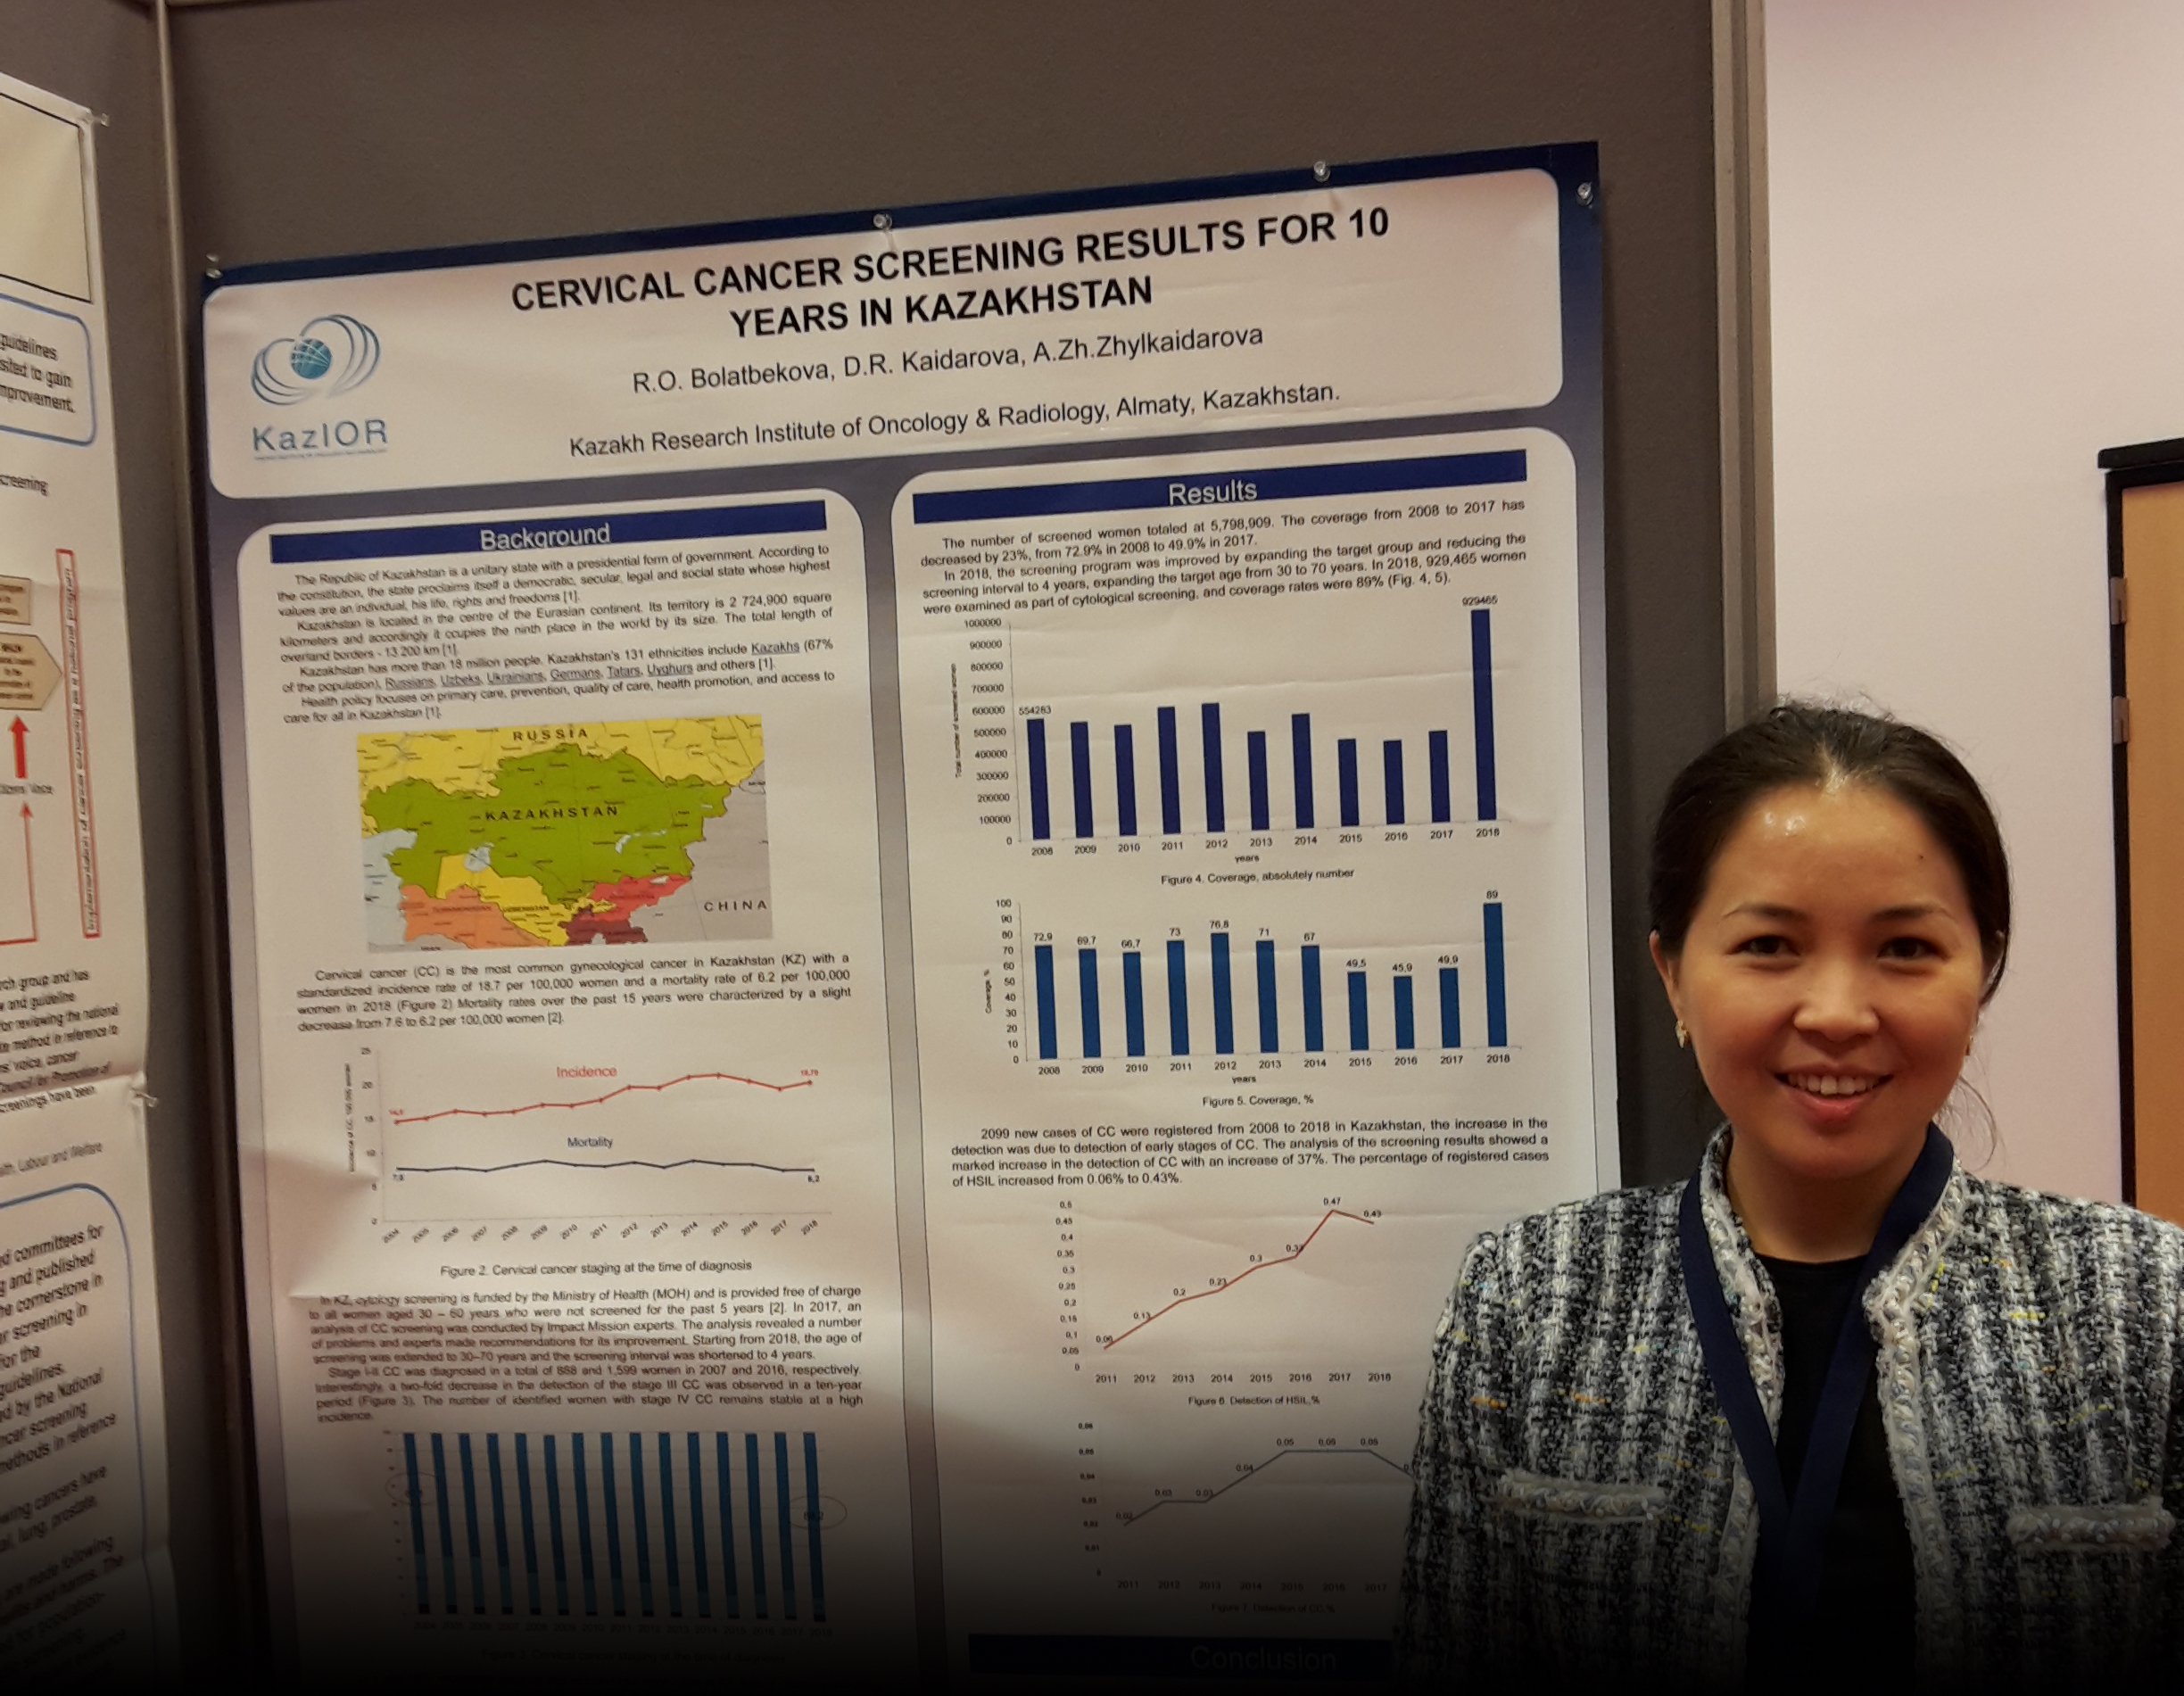 Kazakhstan cancer screening presentation at the ICSN Conference in the Netherlands, 2019